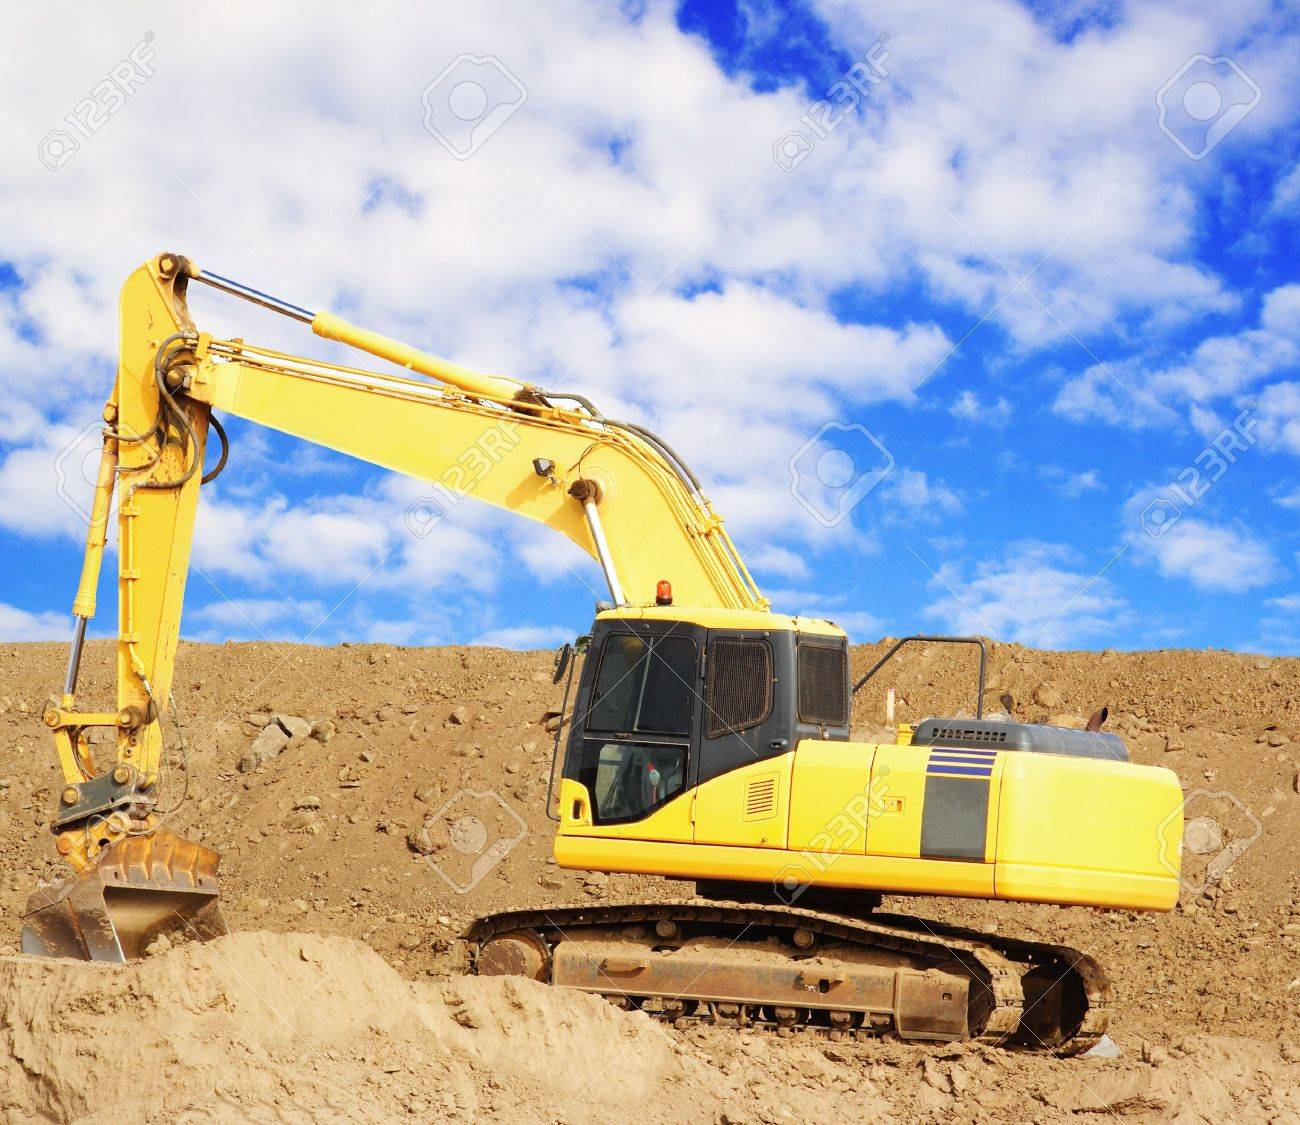 Earthmover in Quarry Stock Photo - 3765945